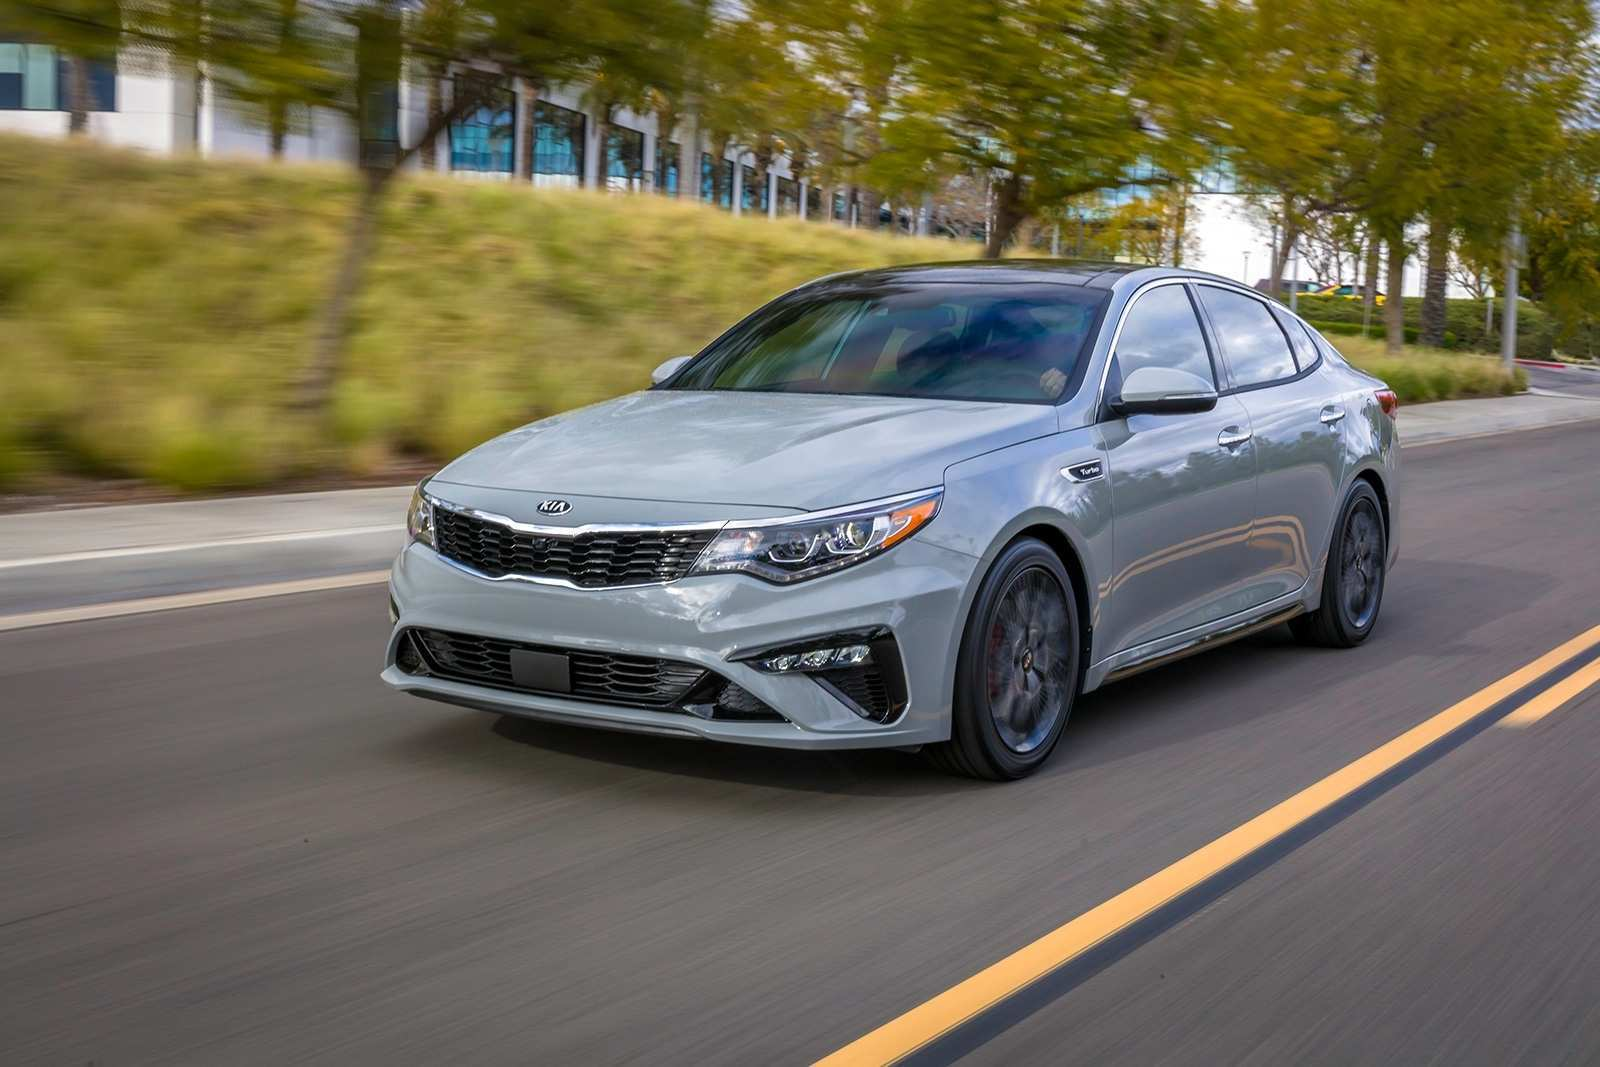 25 Great The Kia Optima Hybrid 2019 Picture Release Date And Review Redesign with The Kia Optima Hybrid 2019 Picture Release Date And Review